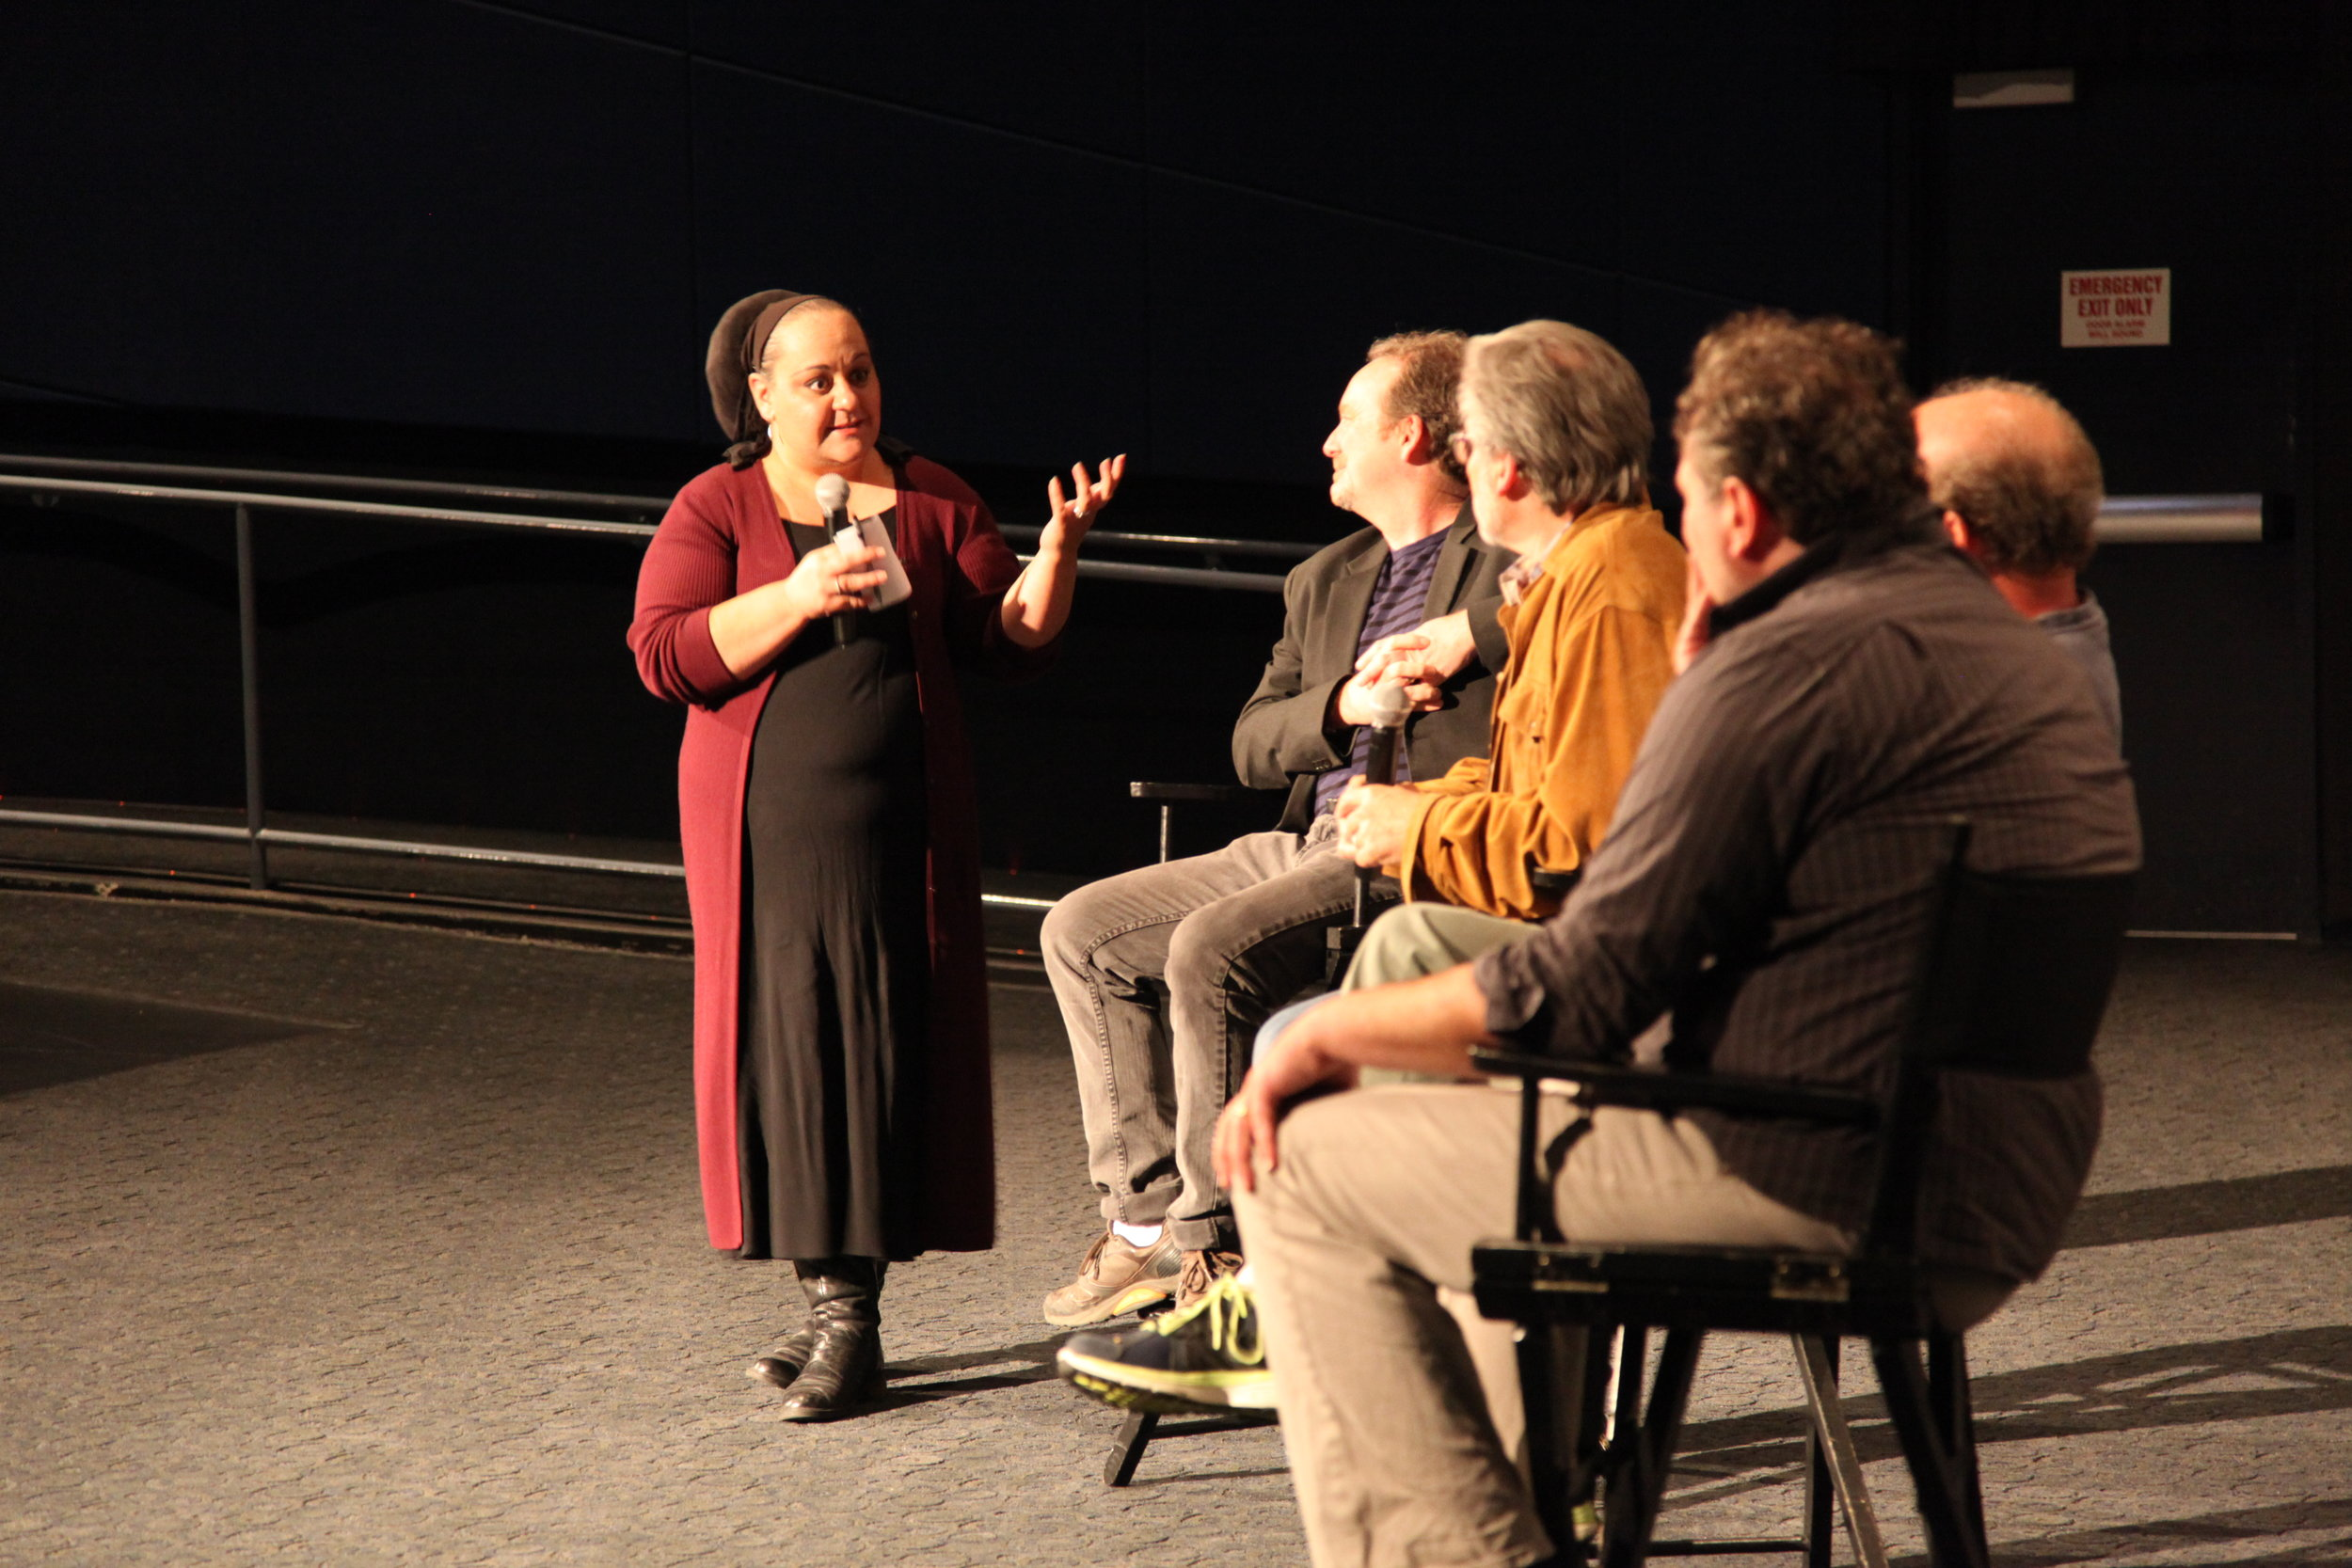 Curator, Marjan Safinia, Consulting Editor/Associate Producer, Doug Blush, Director, Paul Lazarus, Producer, Barry Opper, Composer, Marco d'Ambrosio